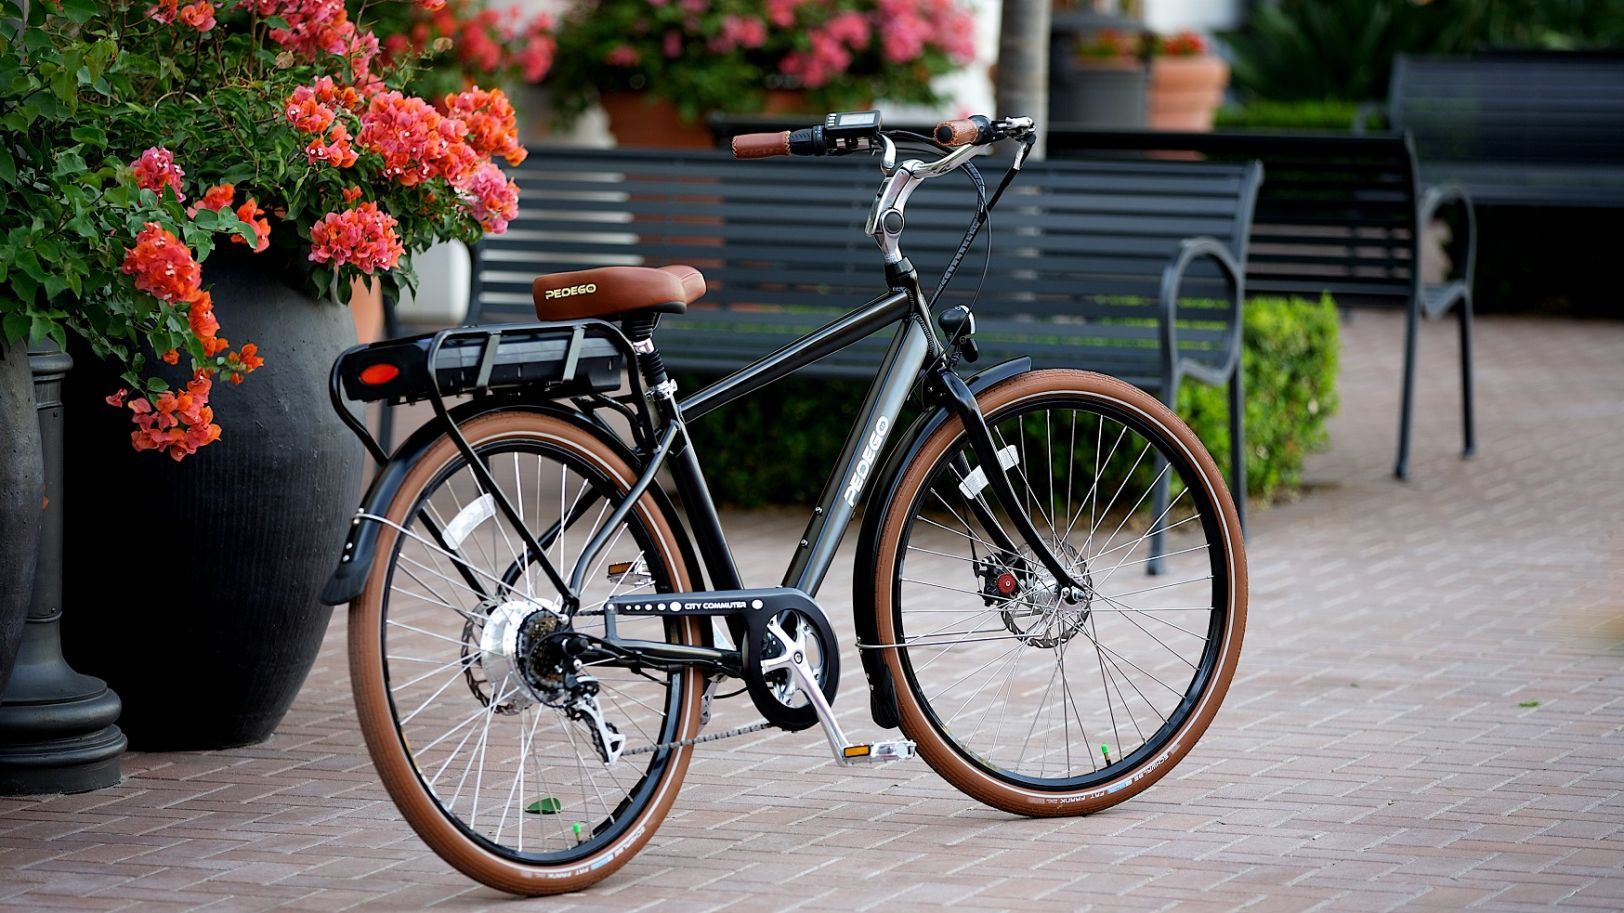 Pedego's City Commuter is a popular choice among East Coast riders.